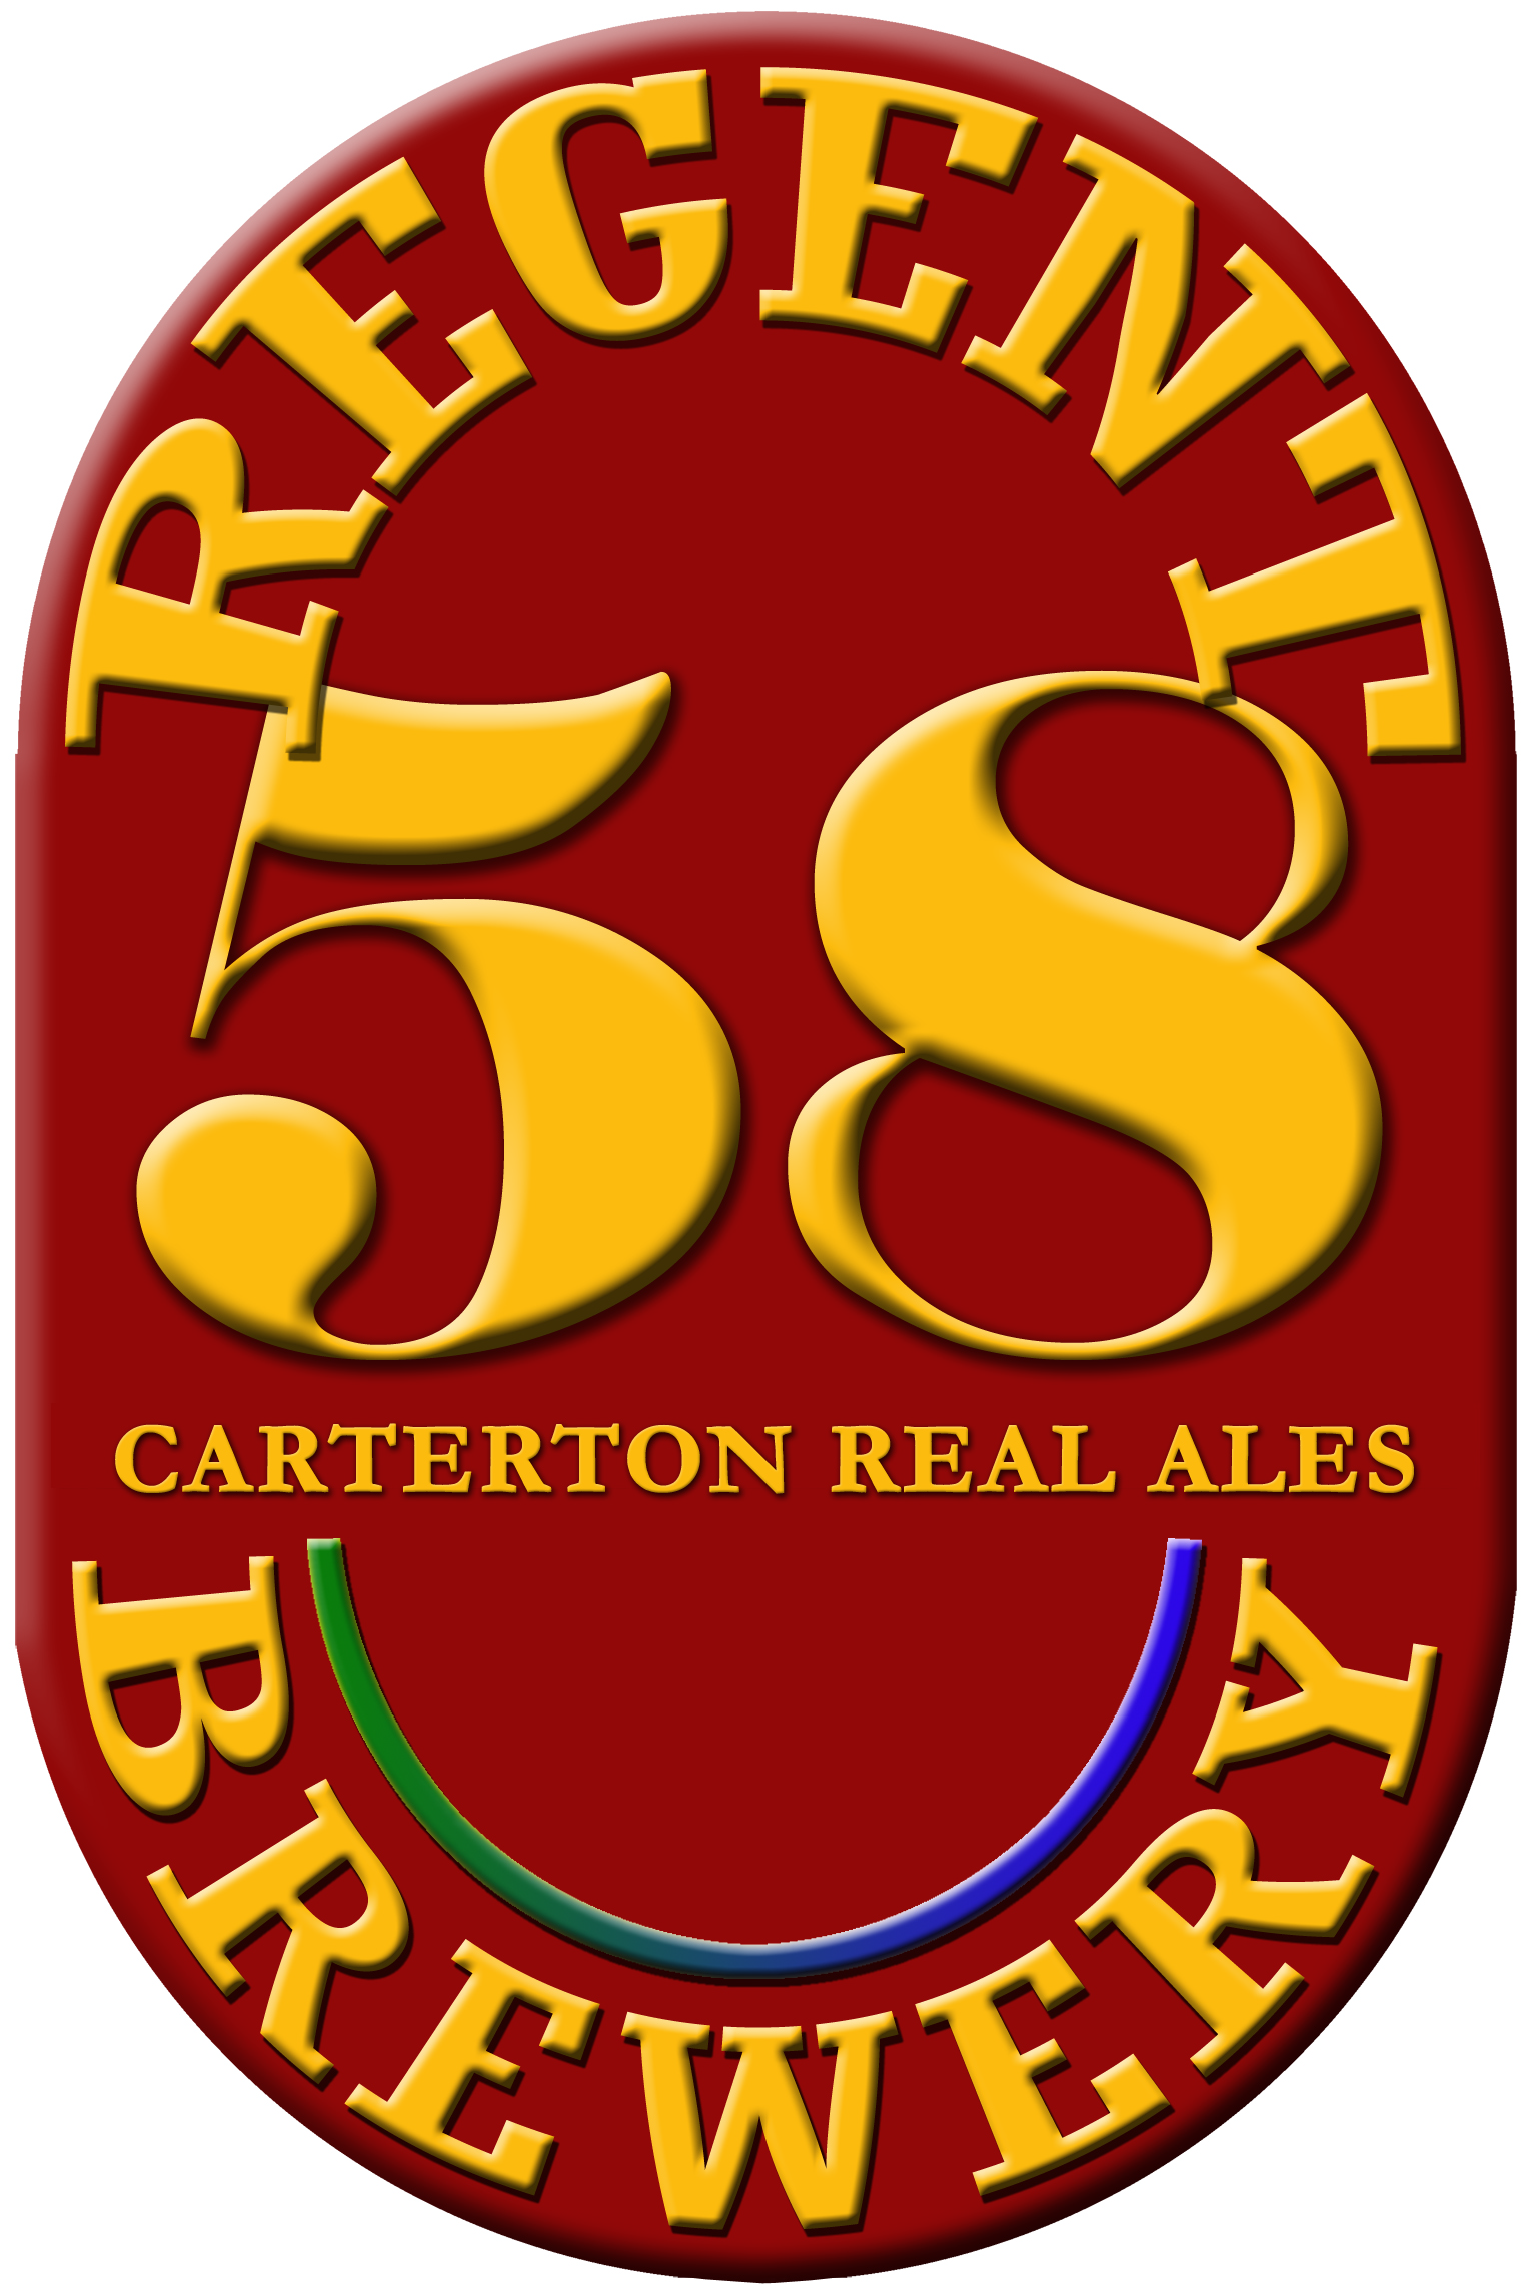 Regent 58 Brewery - Carterton Real Ales.png